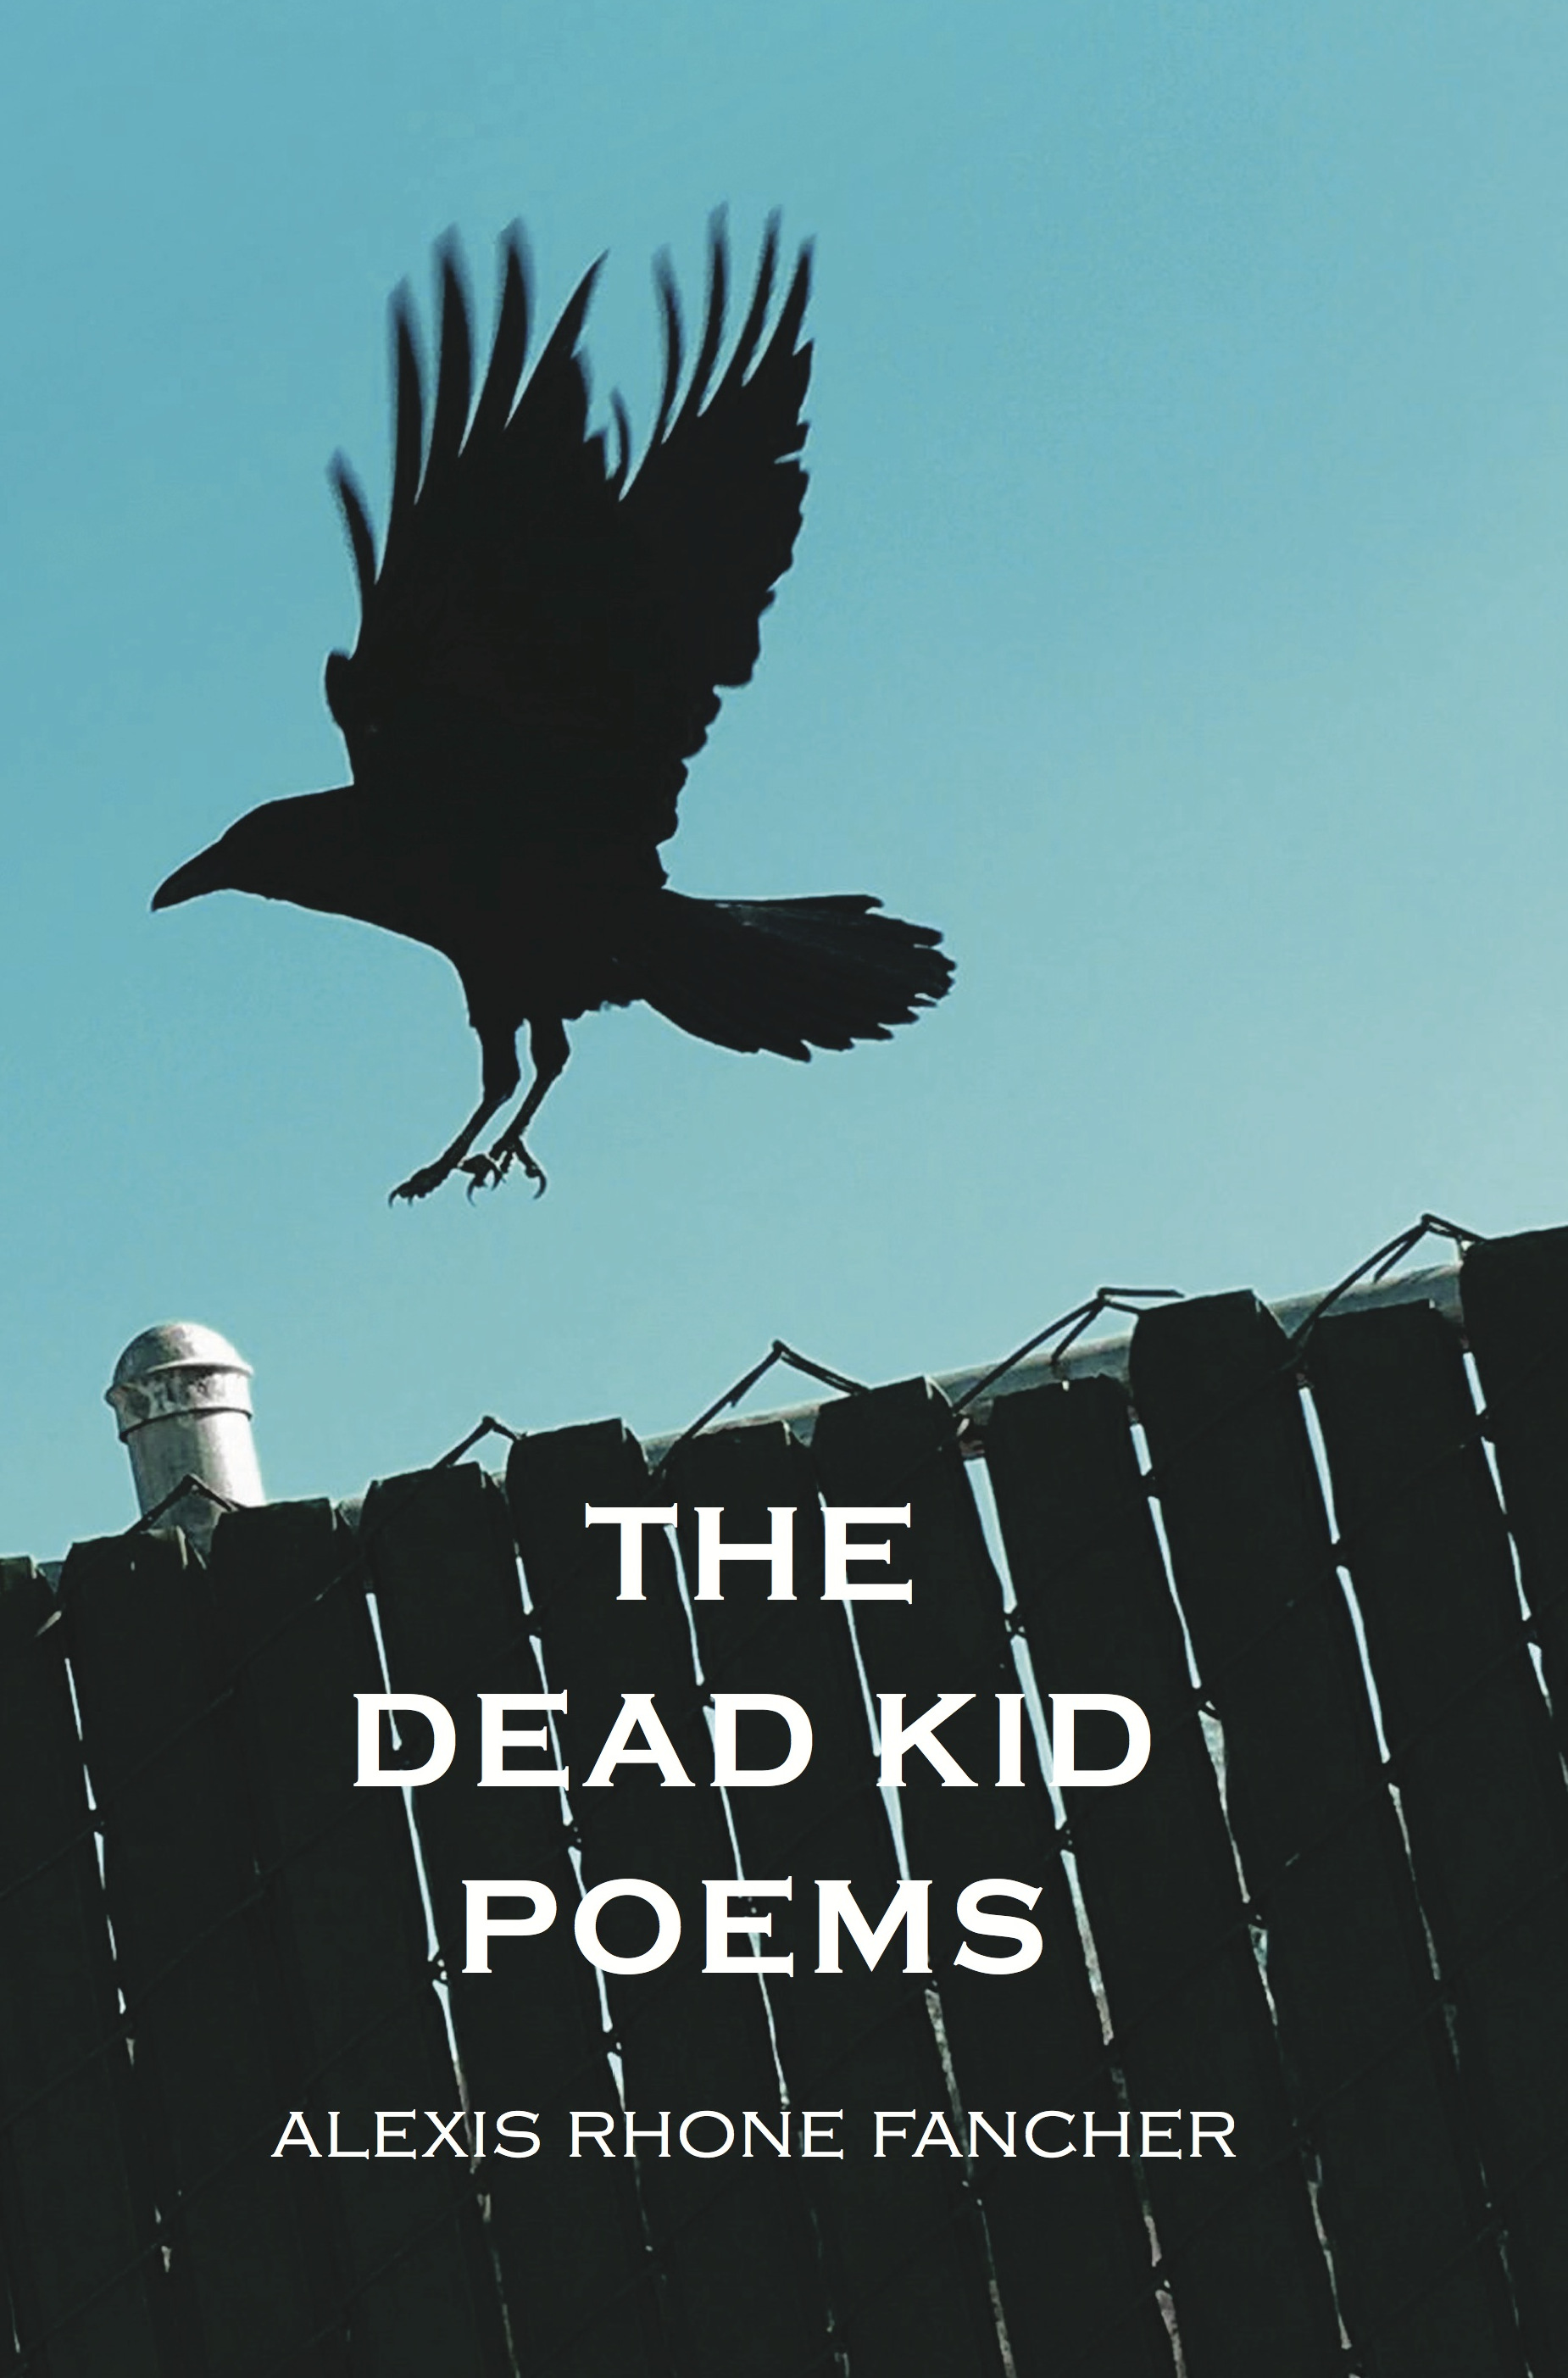 Front Cover of The Dead Kid Poems, by Alexis Rhone Fancher